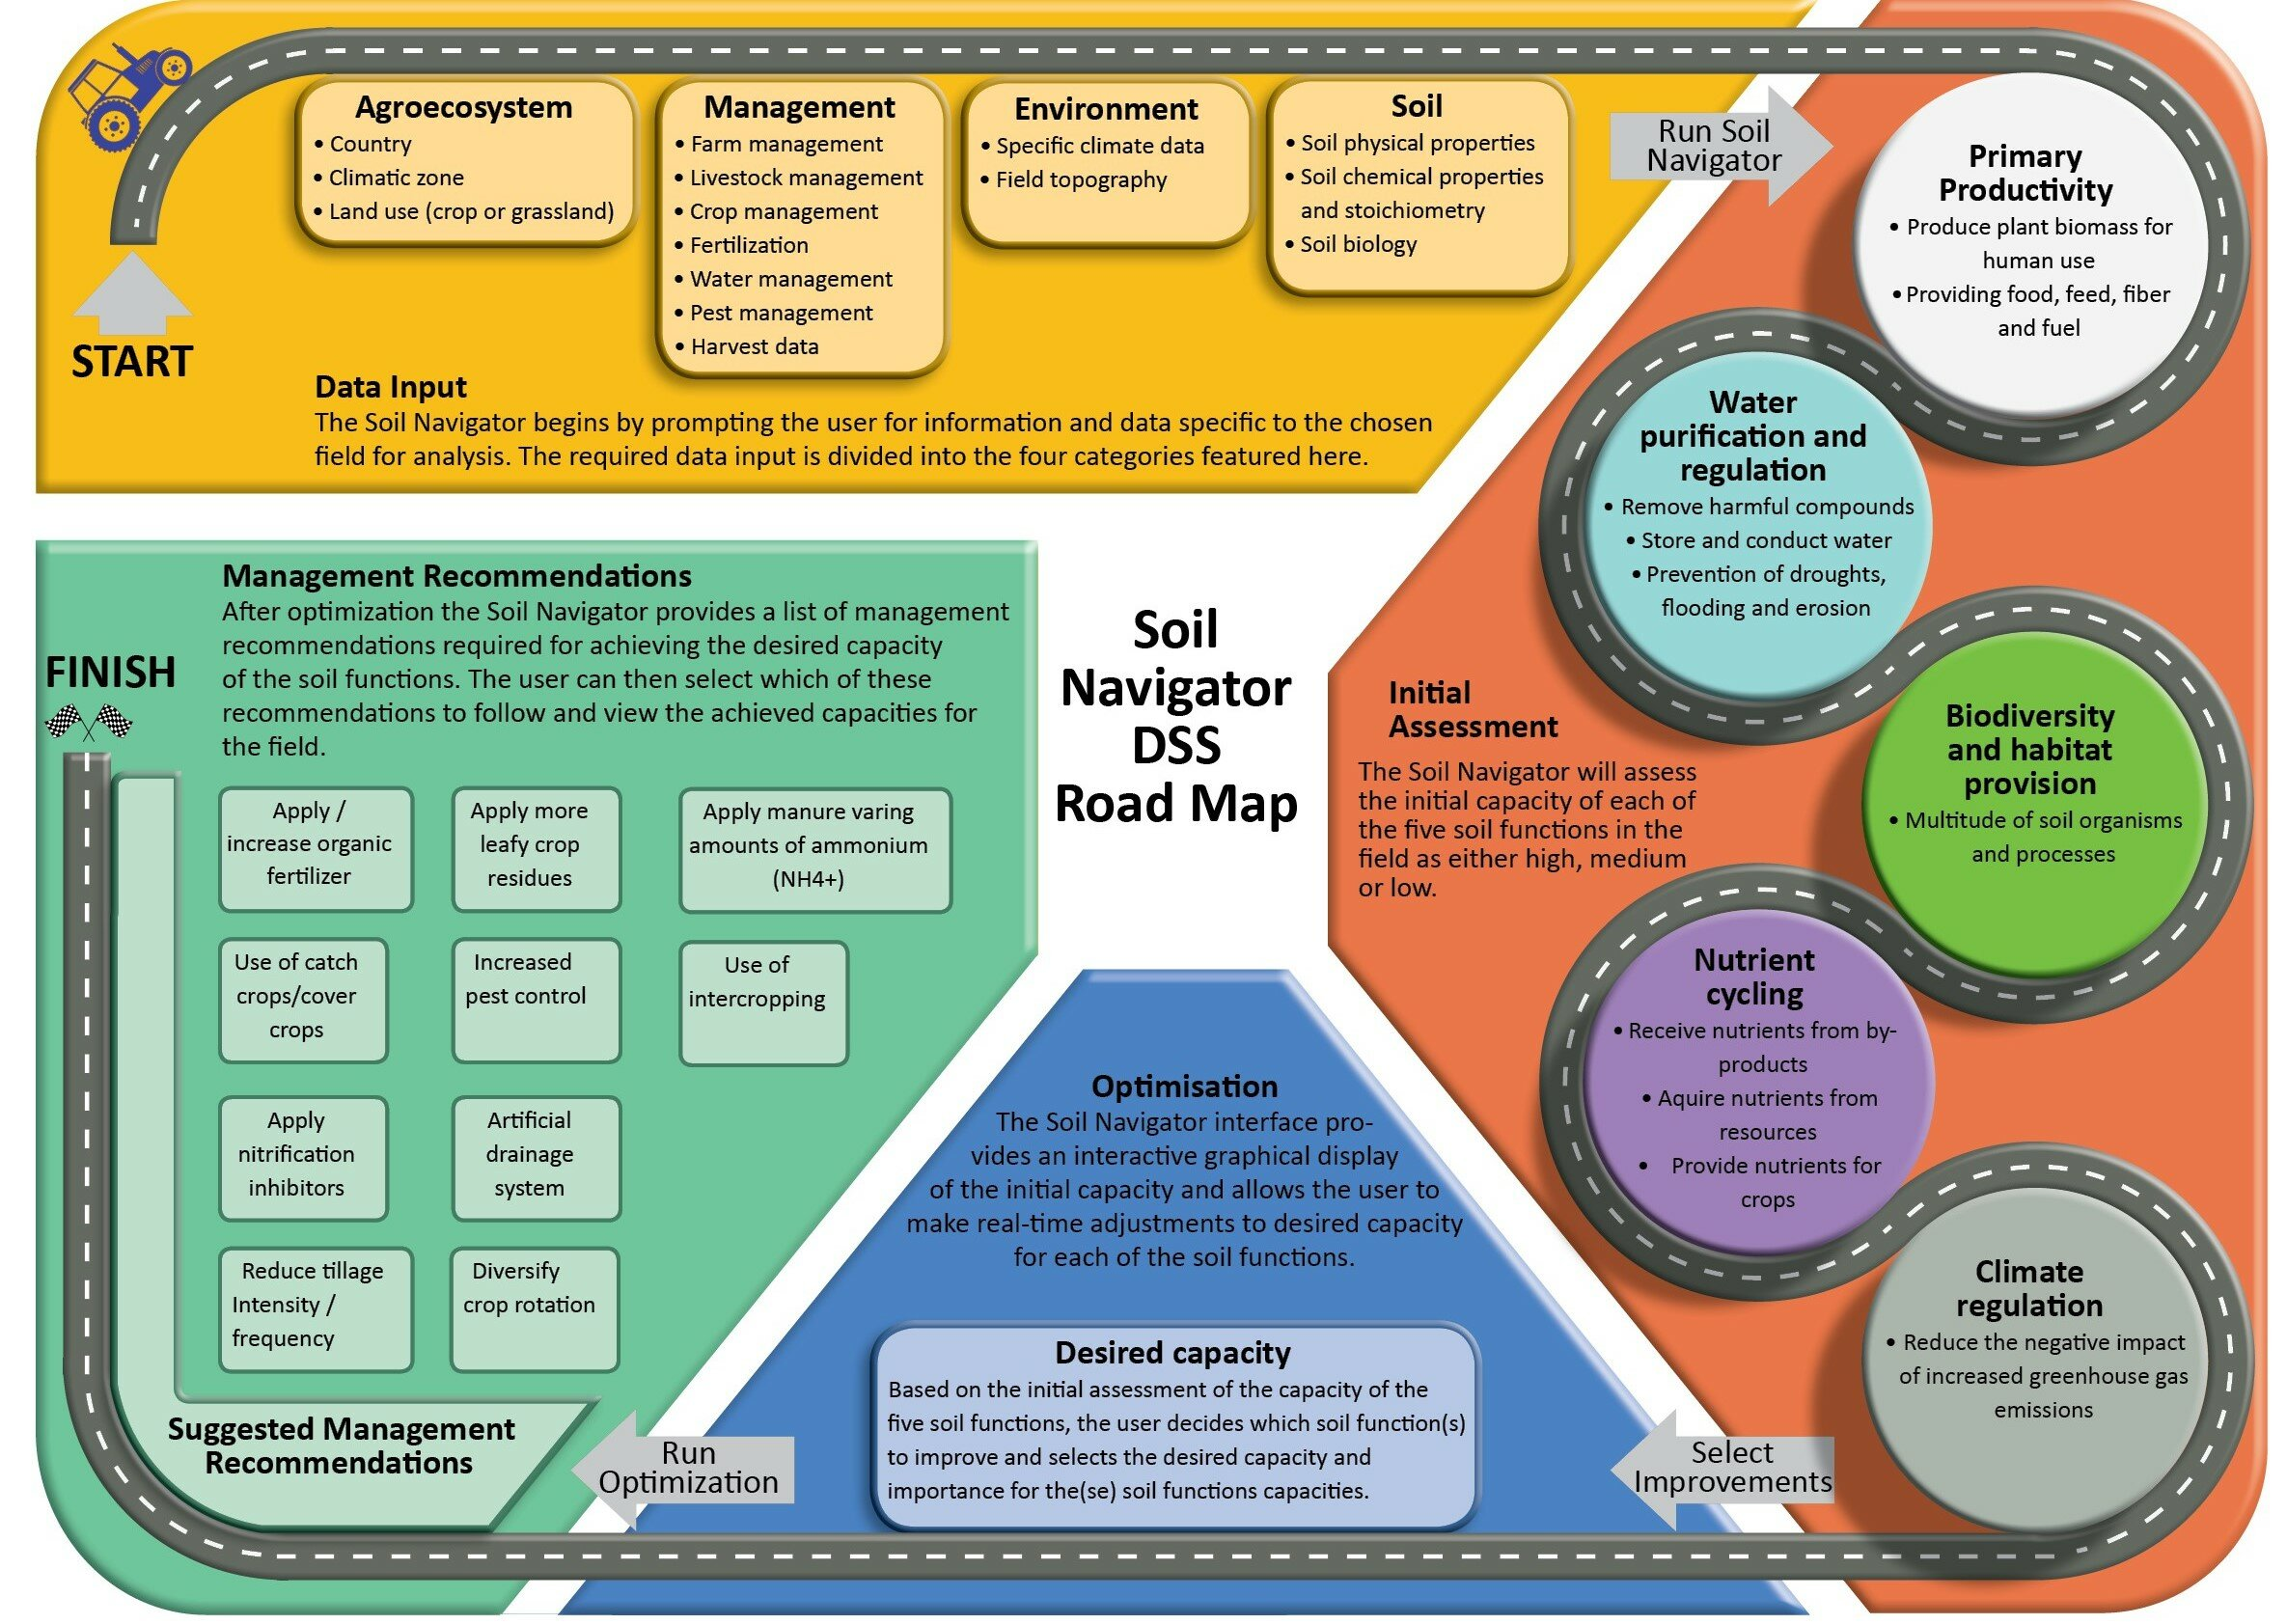 Soil Navigator roadmap infographic